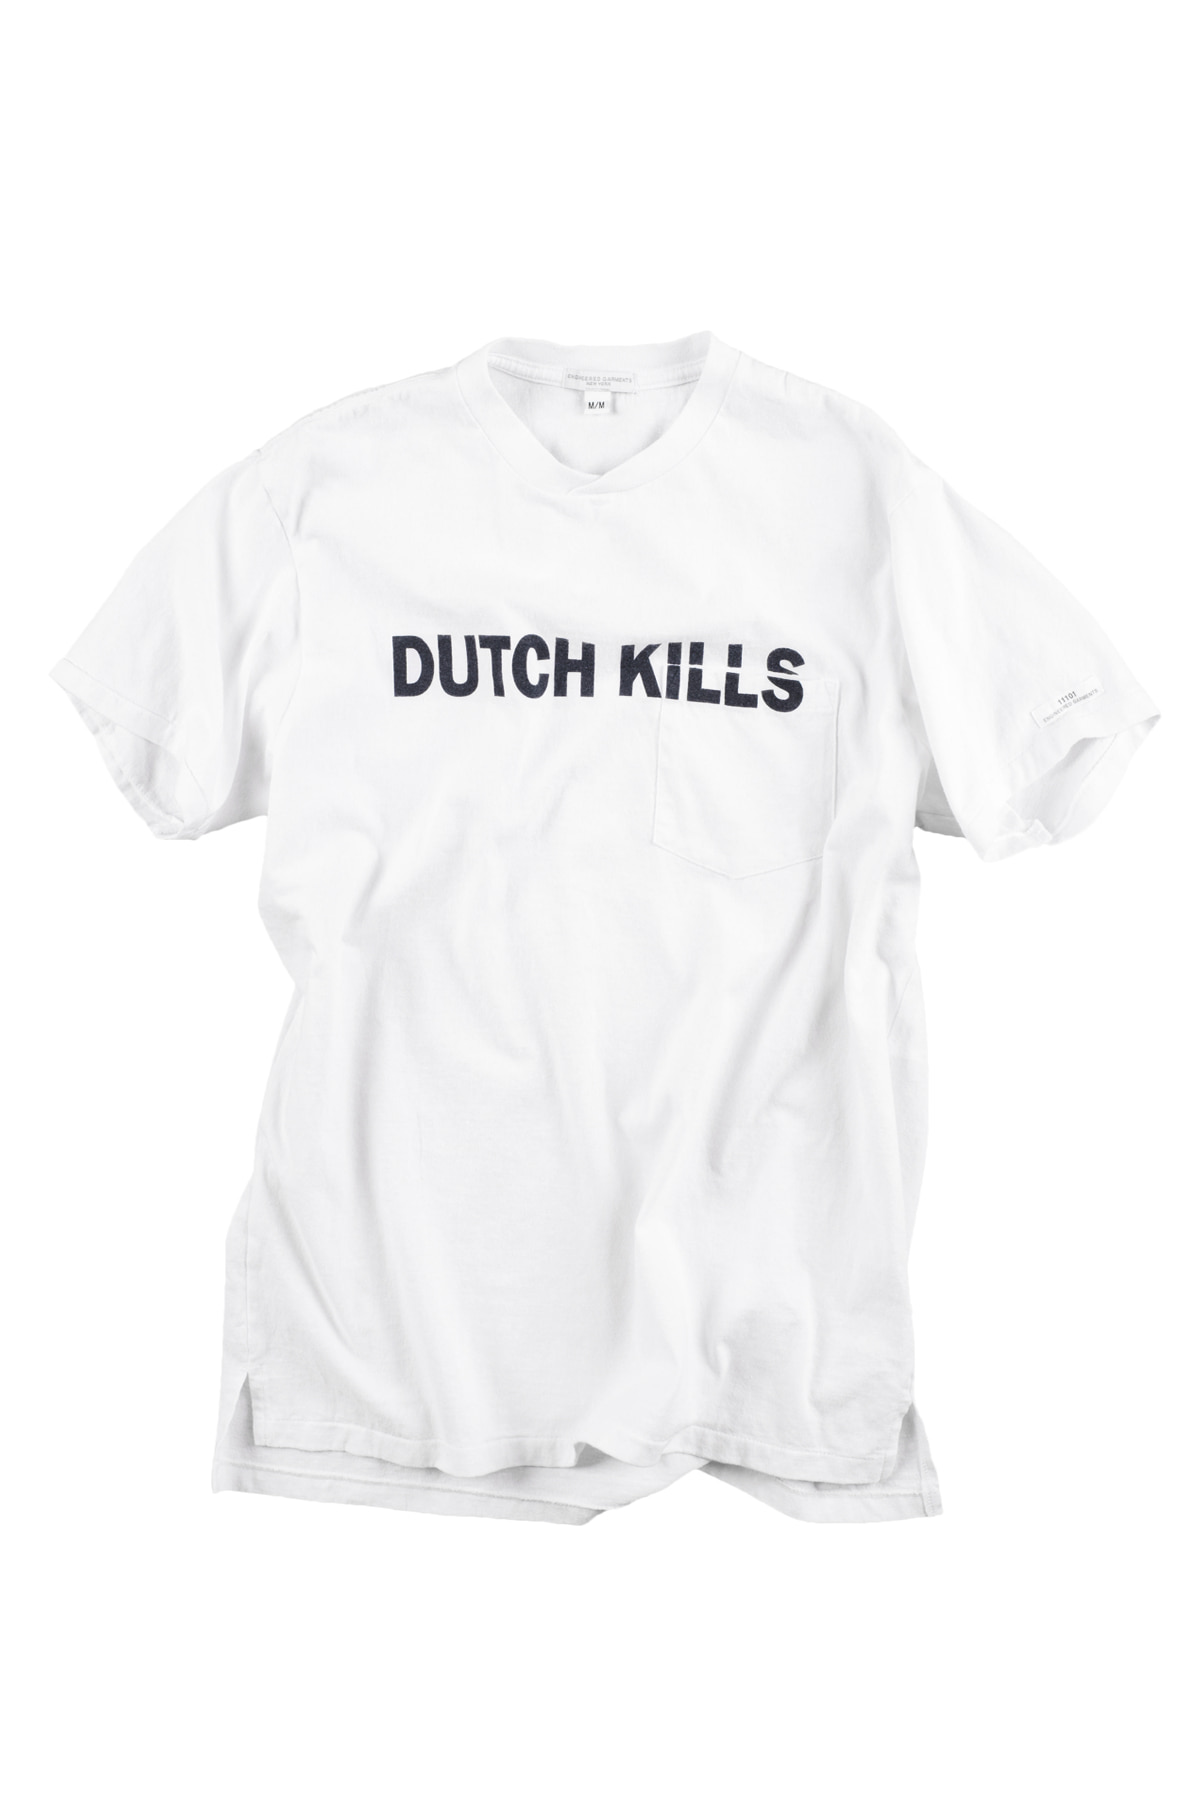 Engineered Garments : Printed T-Shirt (Dutchkills)